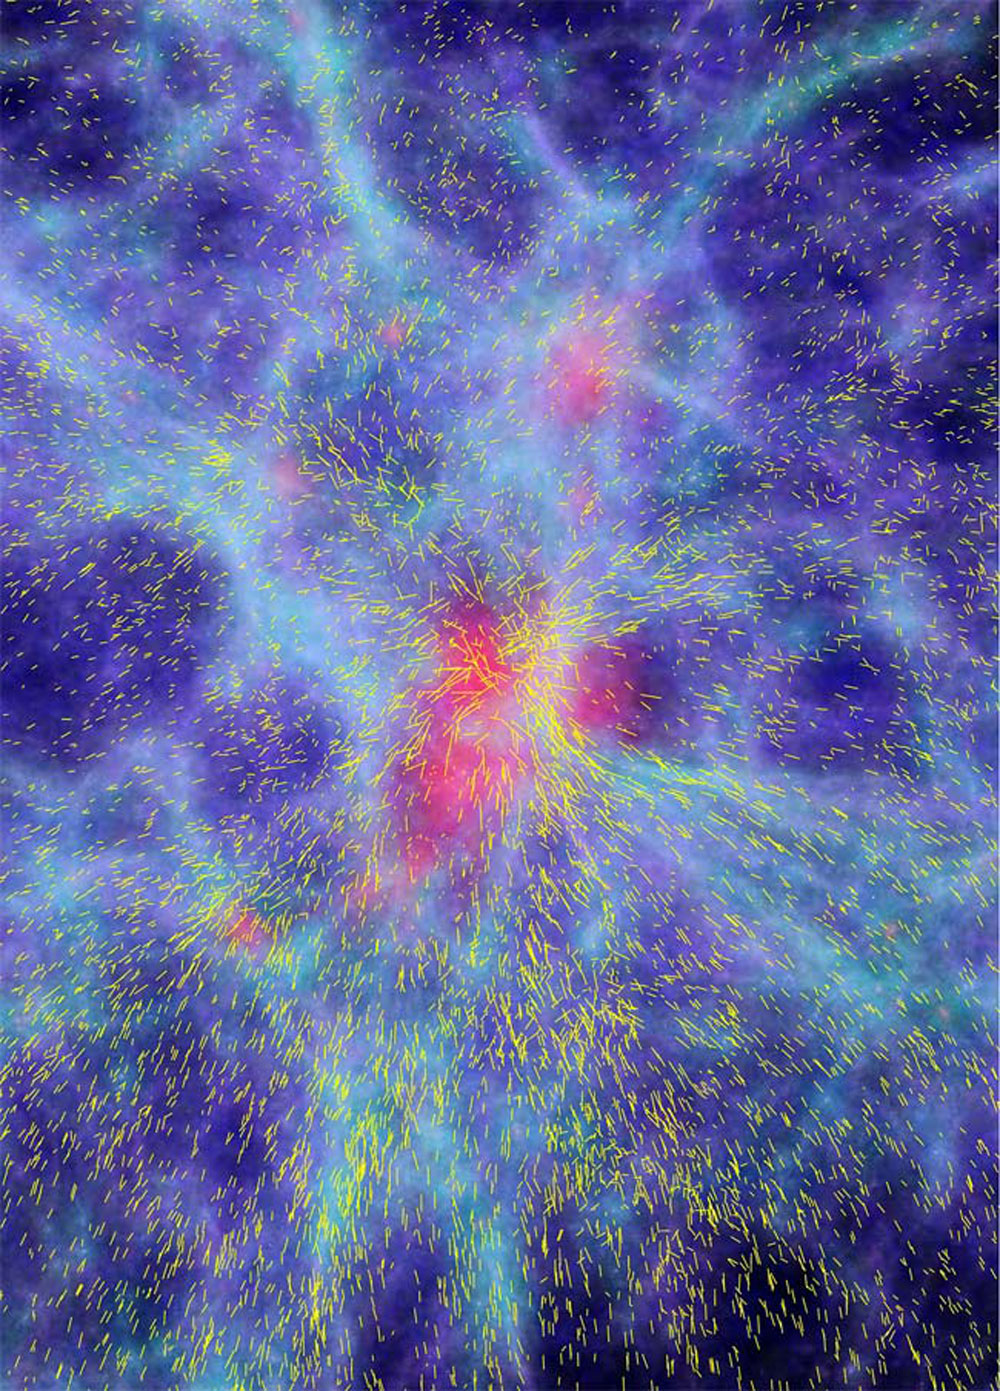 Computer simulation of the formation of large-scale structures in the universe